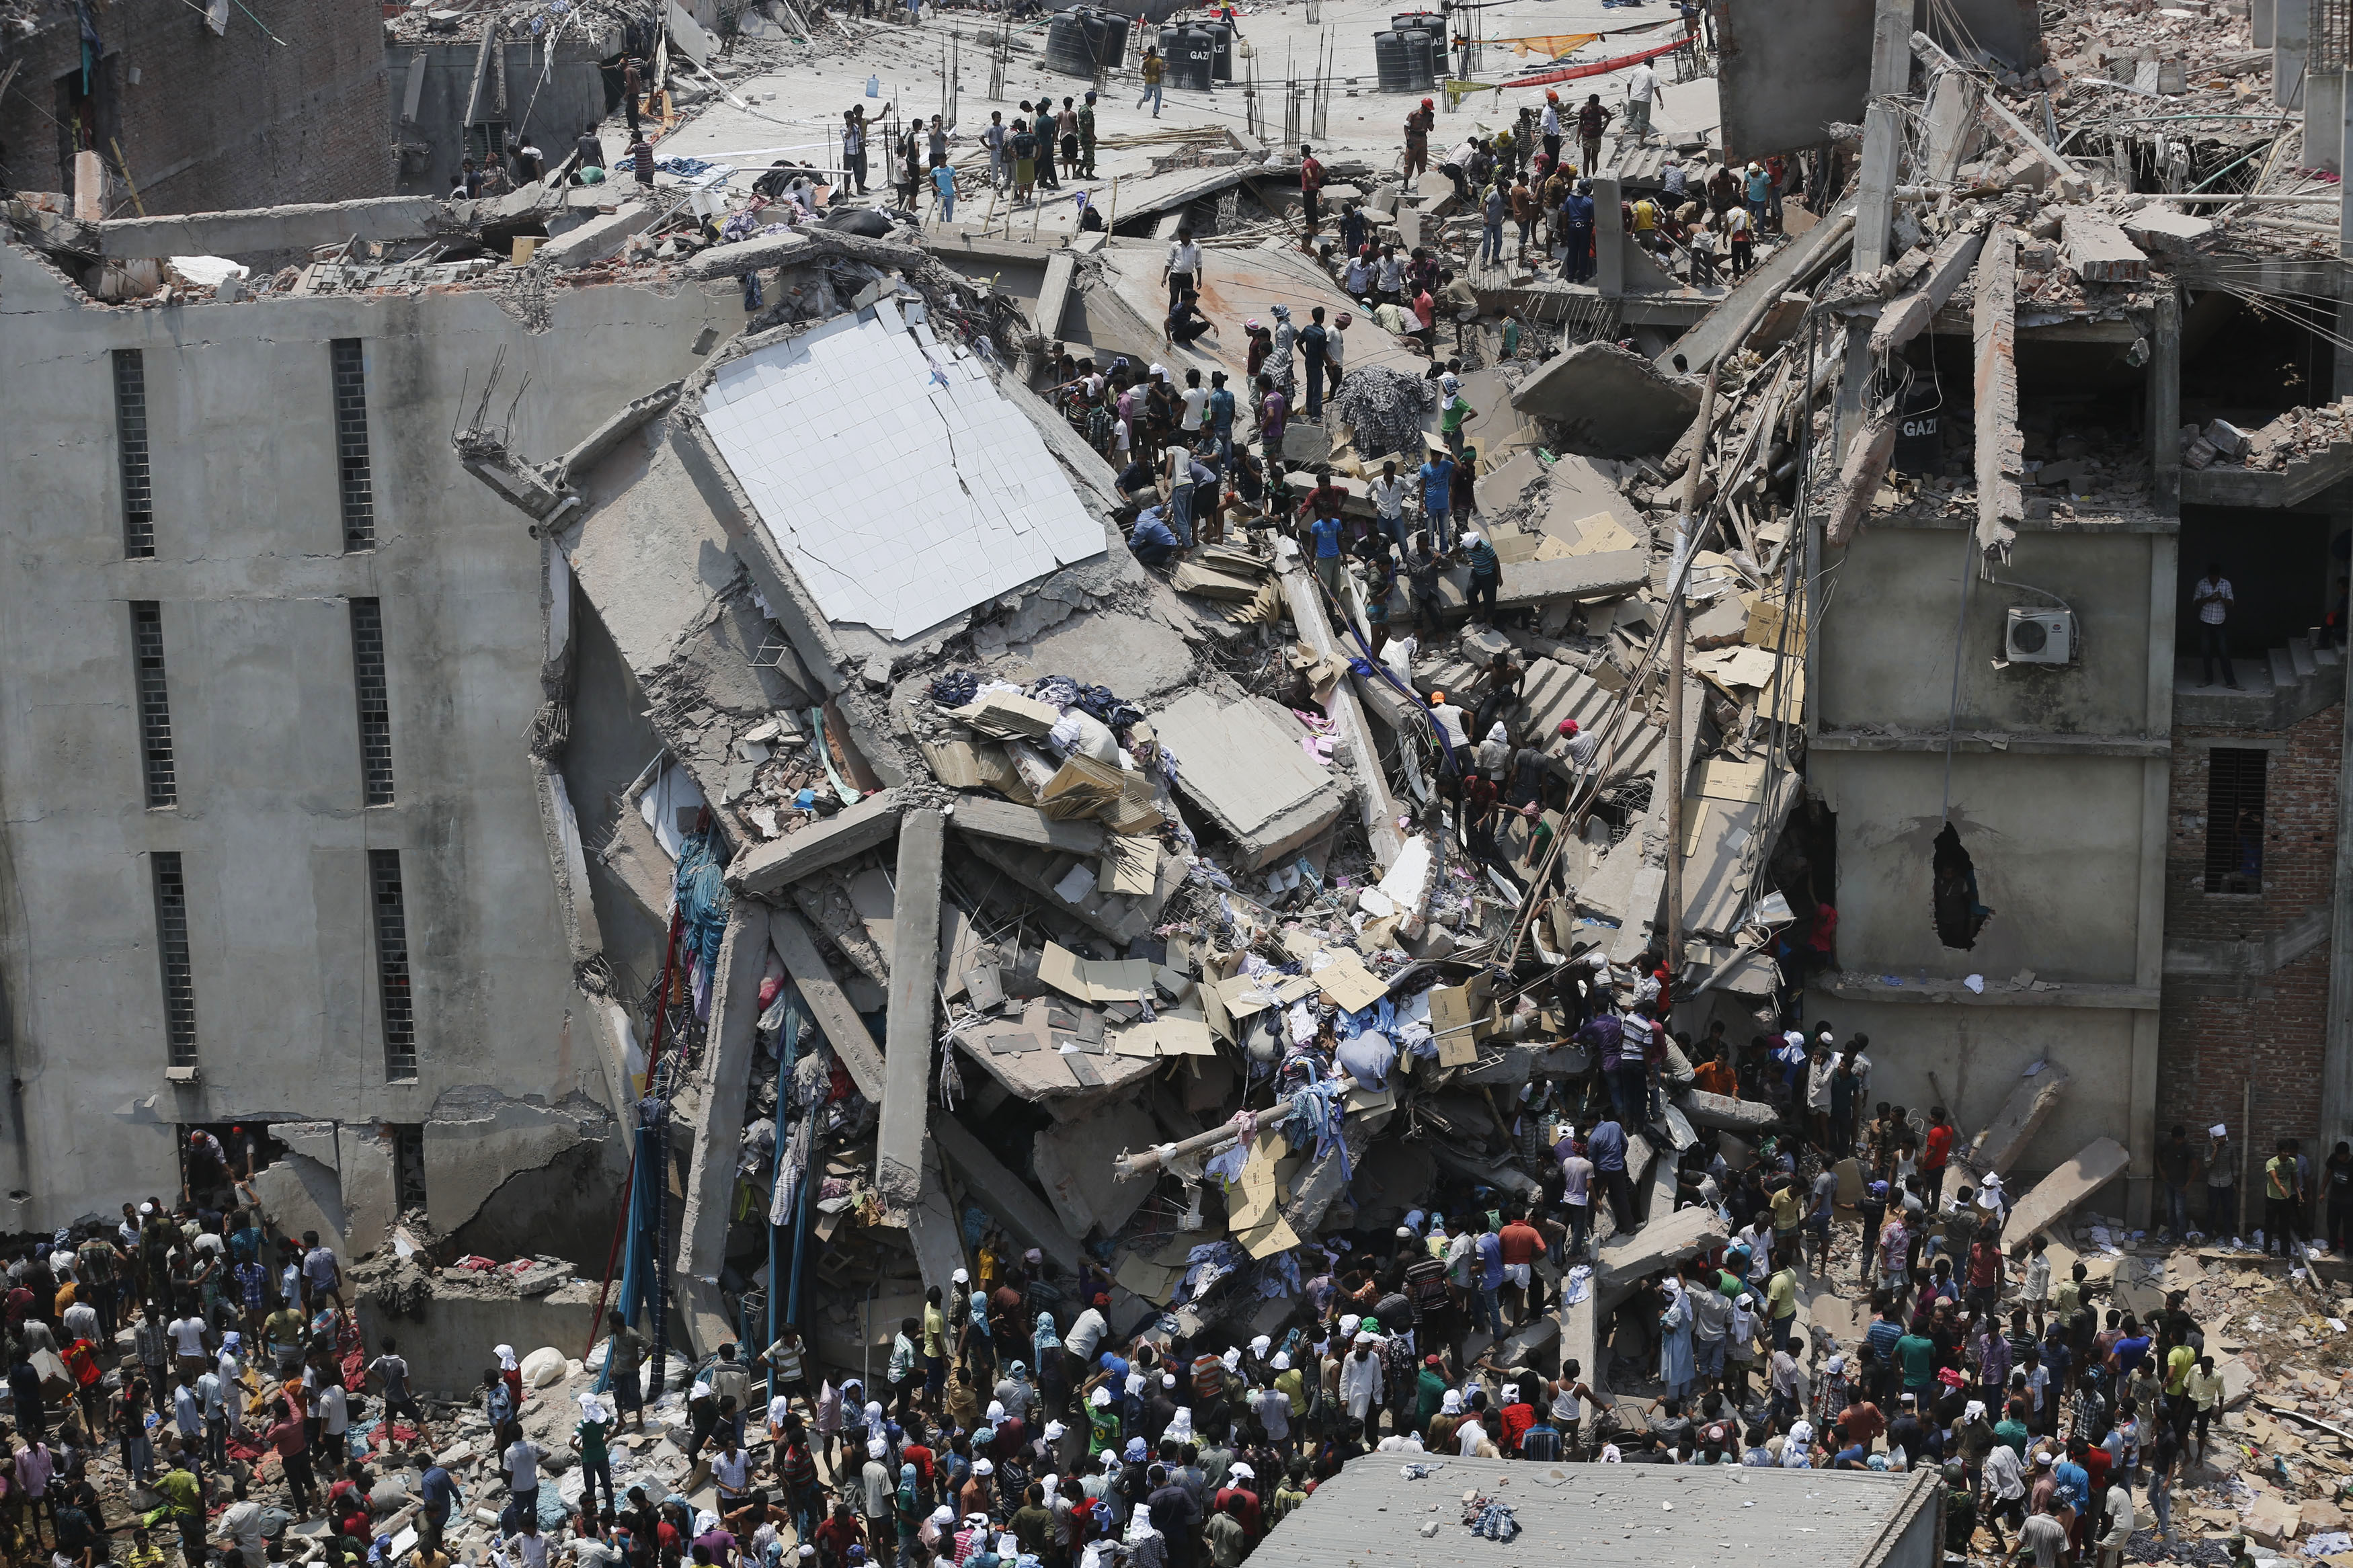 Three years ago, the Rana Plaza factory collapse left more than 1,000 people dead